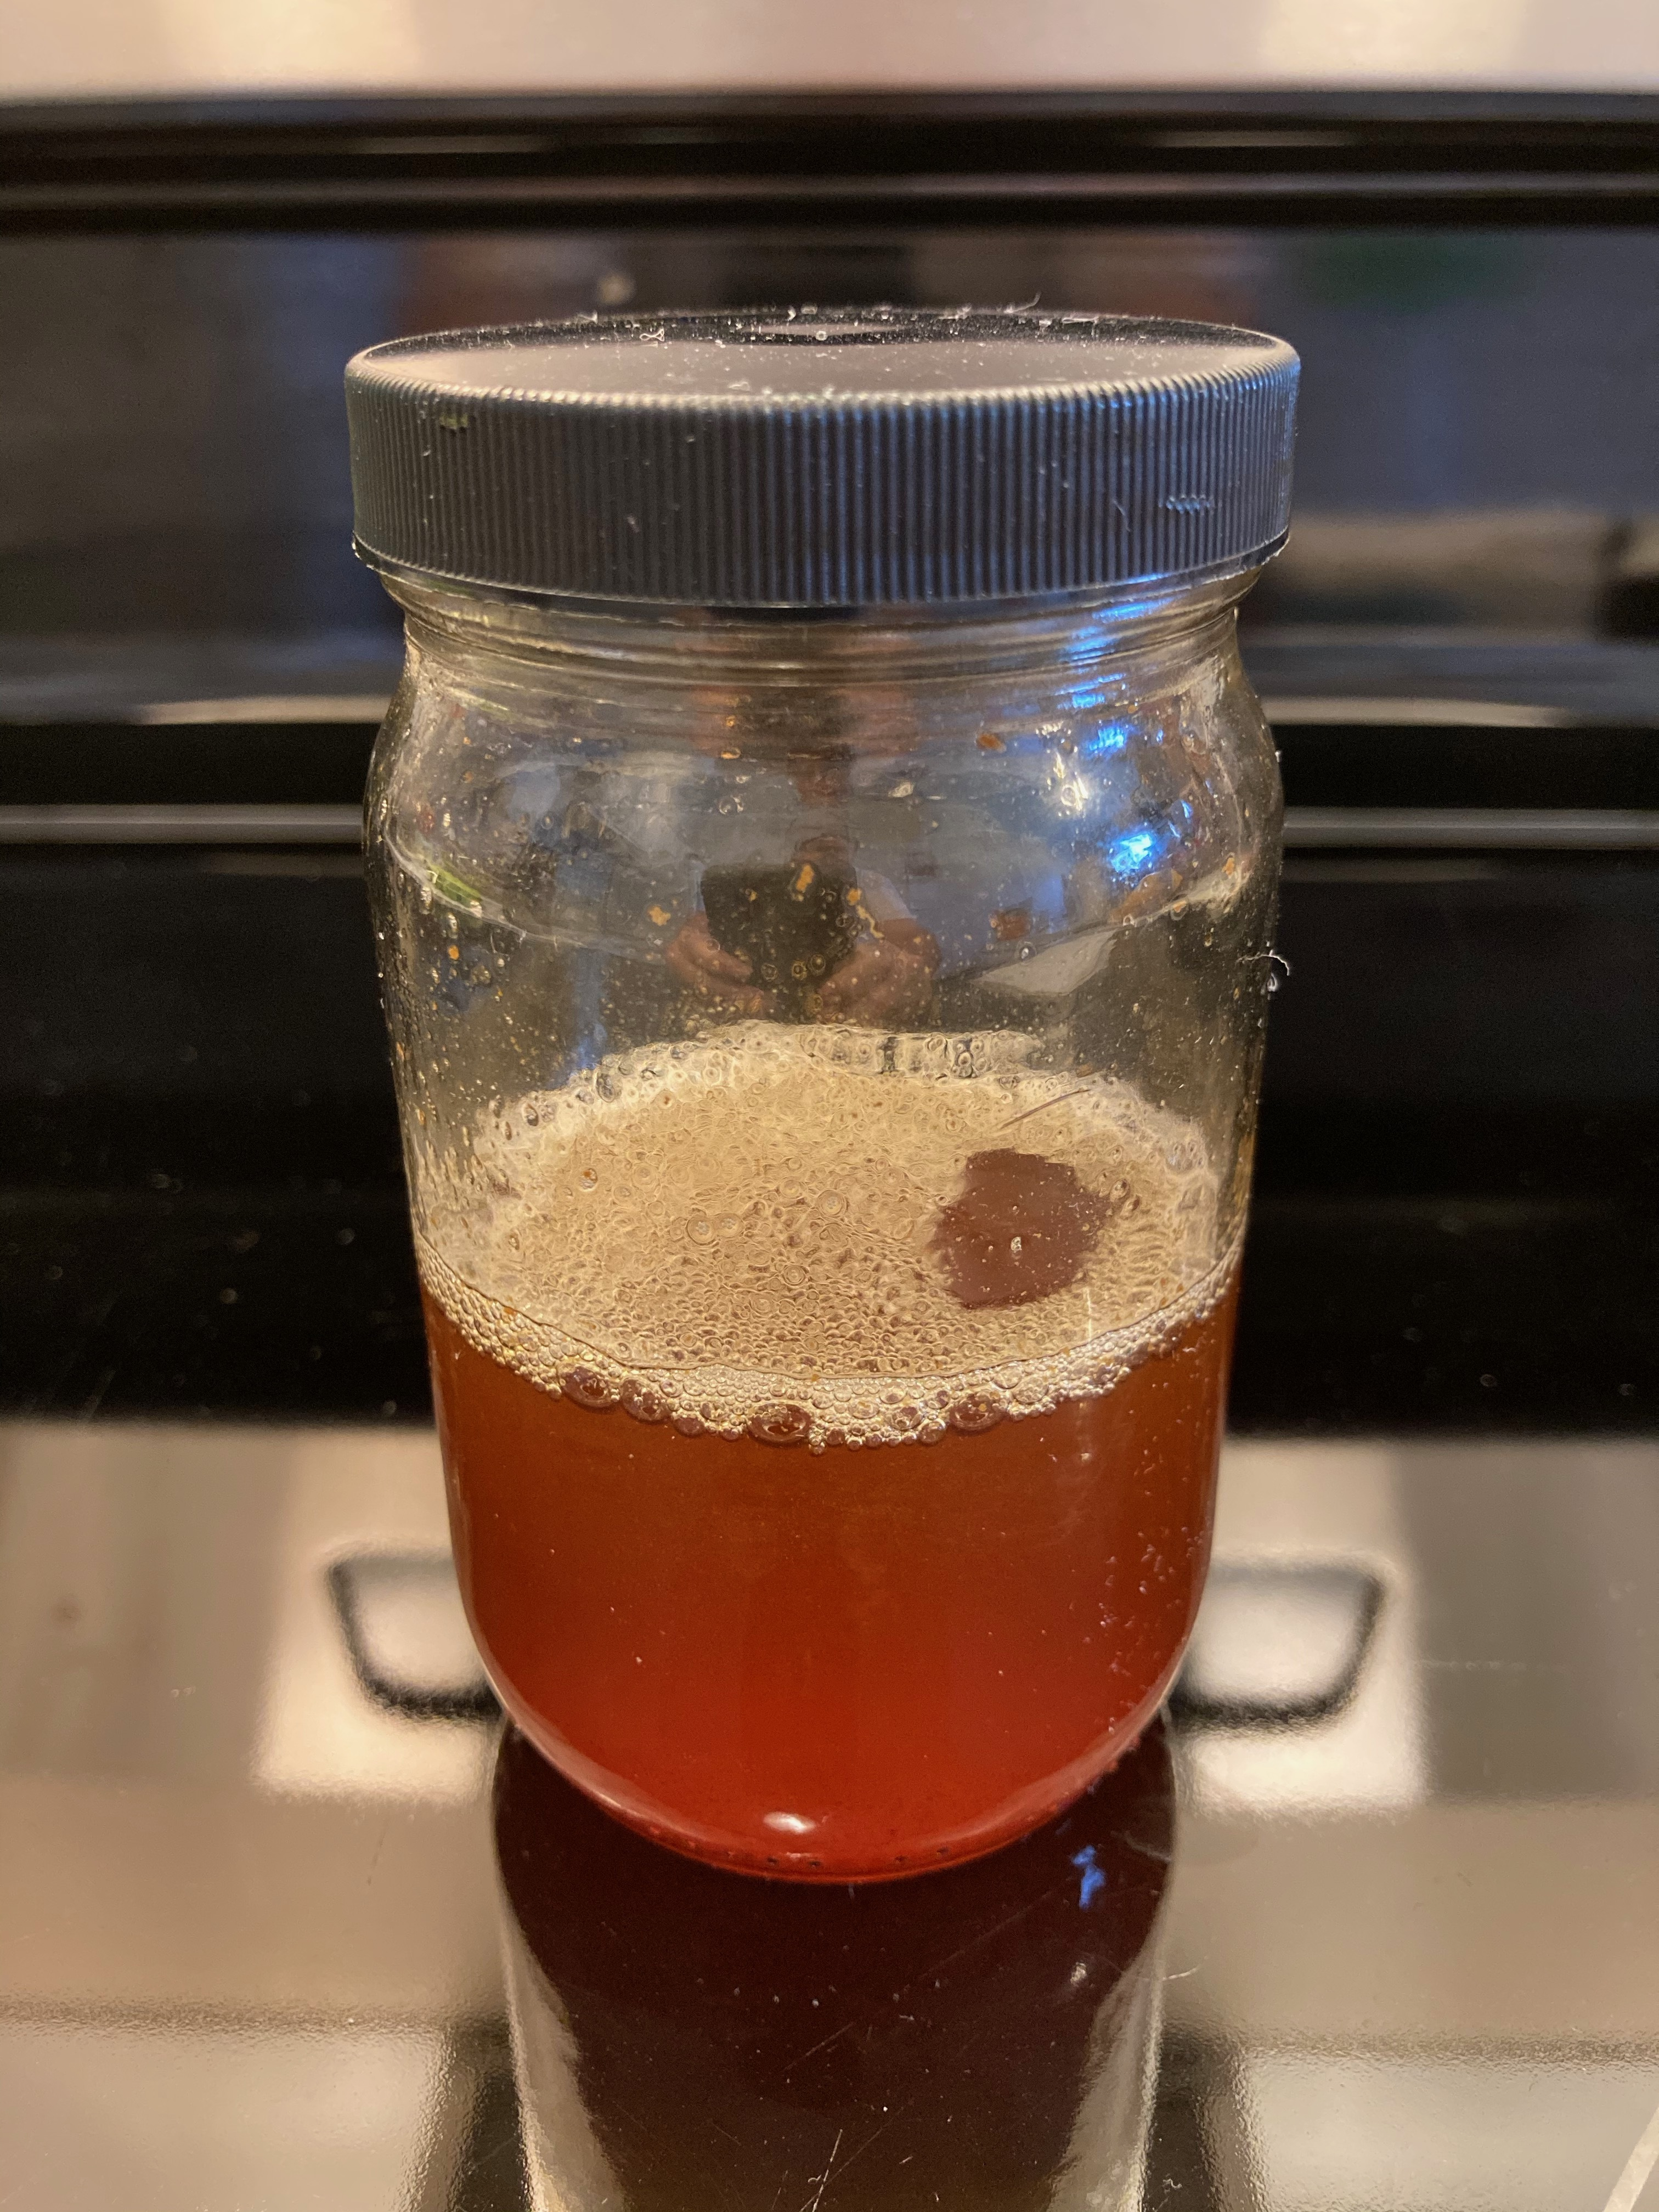 Homemade Bitters: Through Rapid Infusion